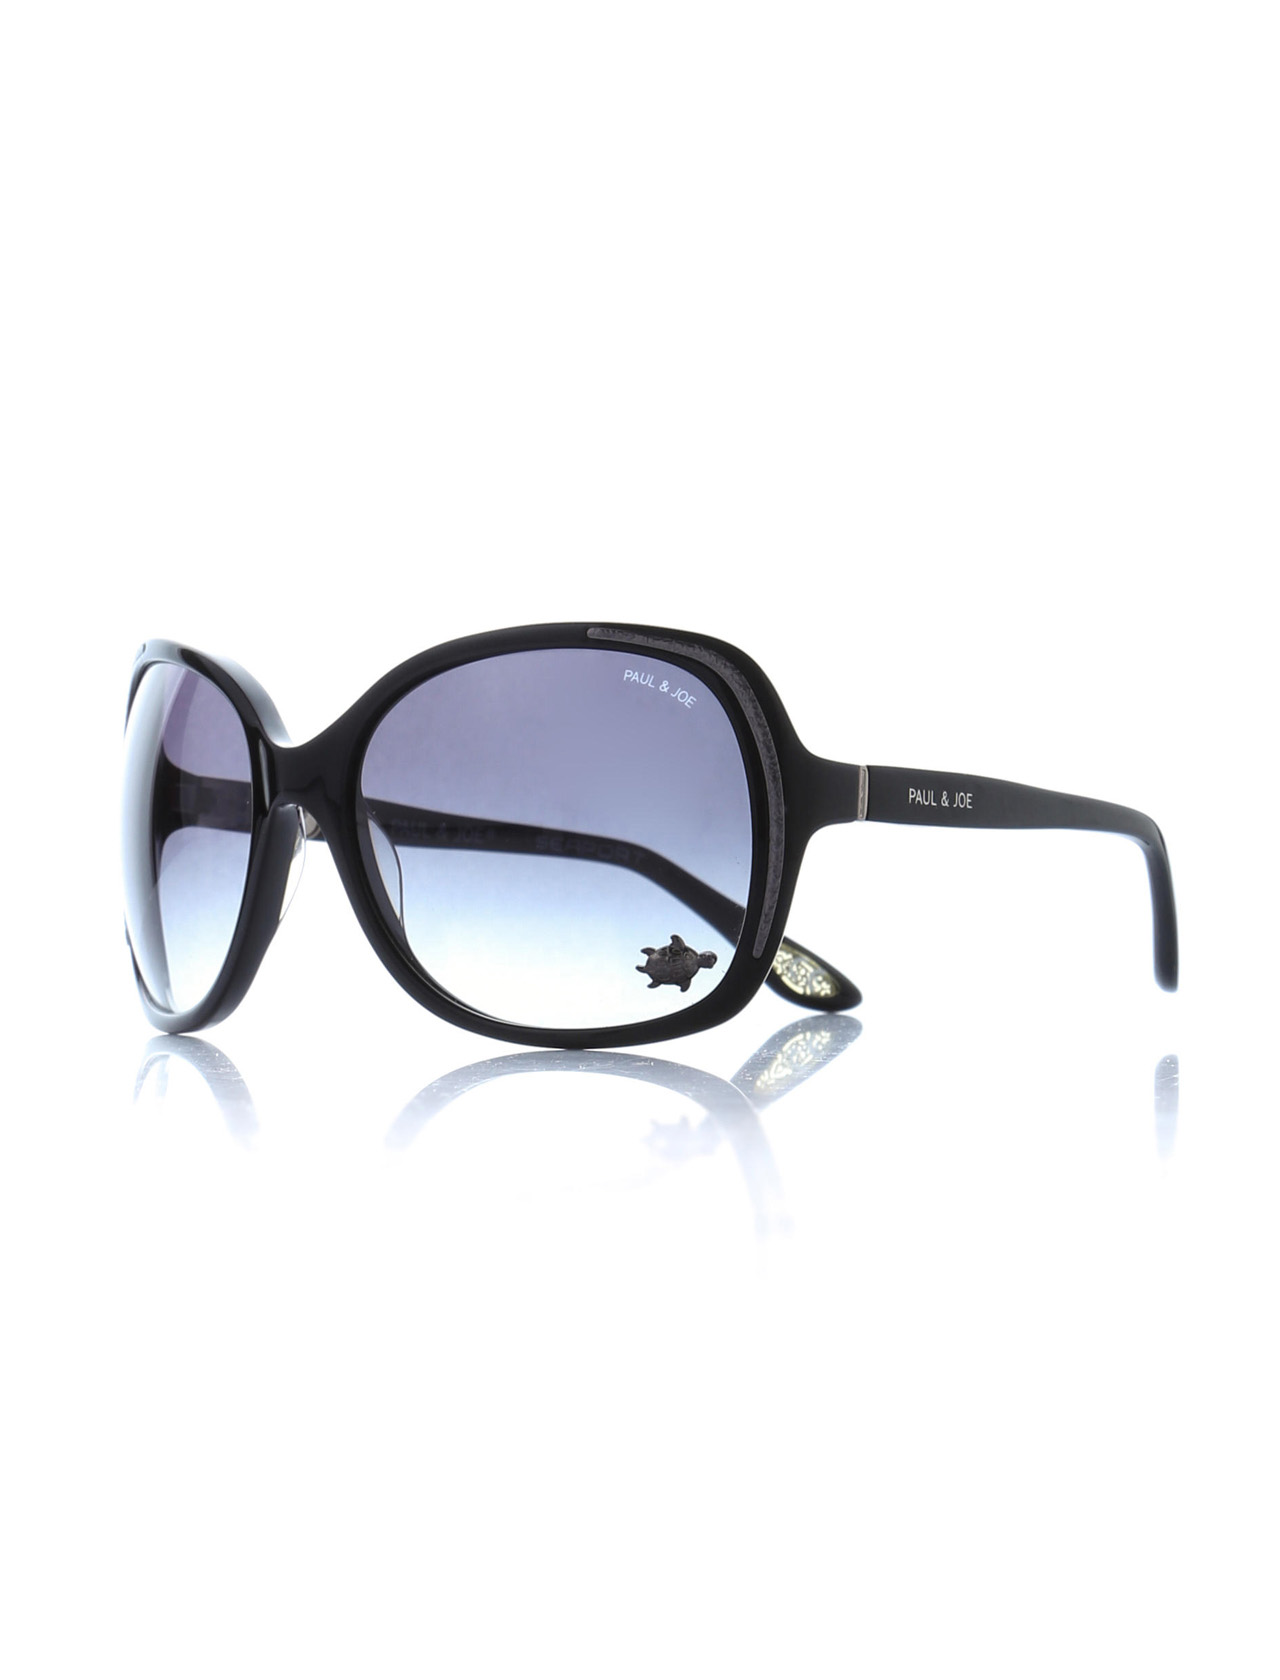 Women's sunglasses pj matura 02 no00 bone black organic oval aval 61-18-125 paul / joe